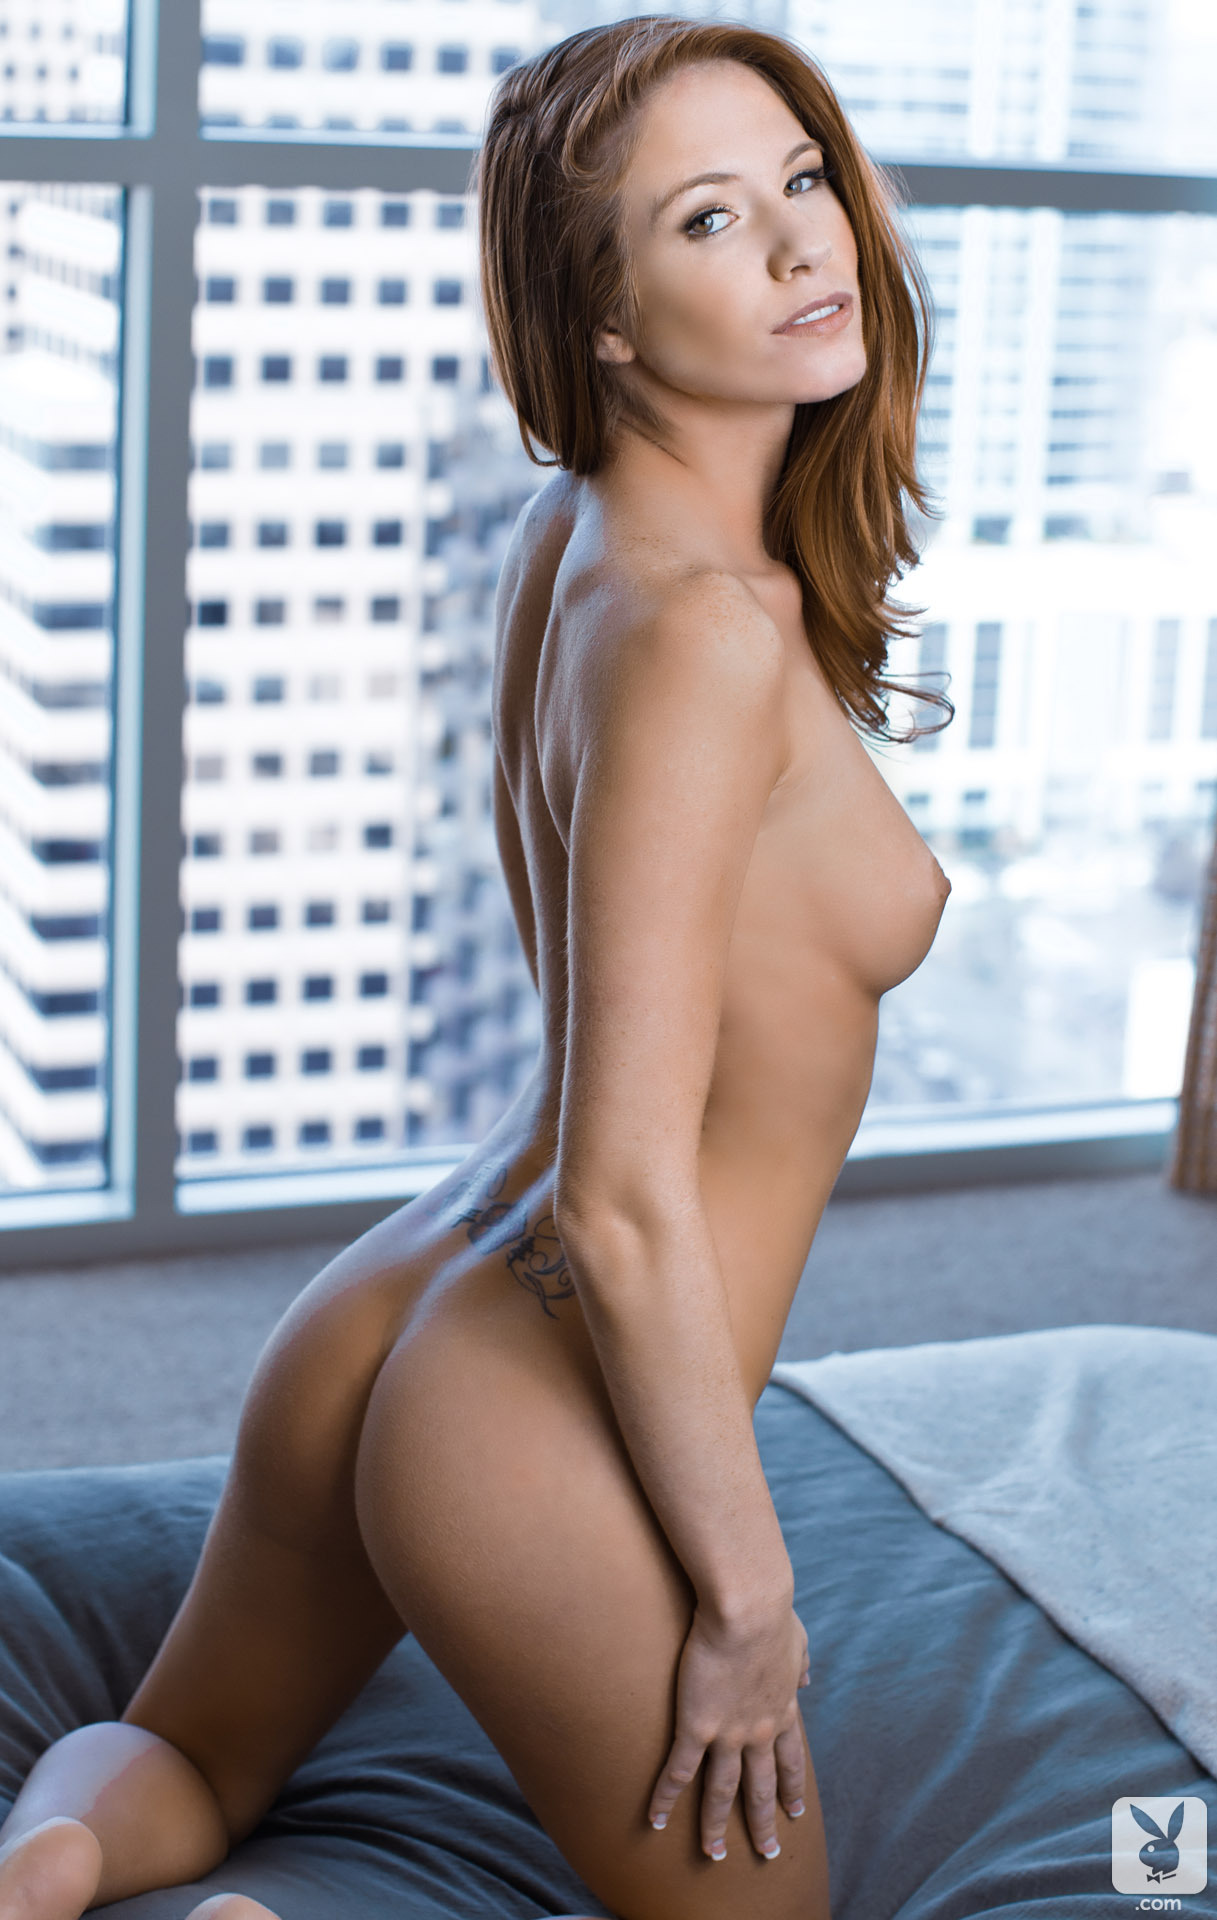 bree-morgan-nude-apartment-redhead-playboy-11